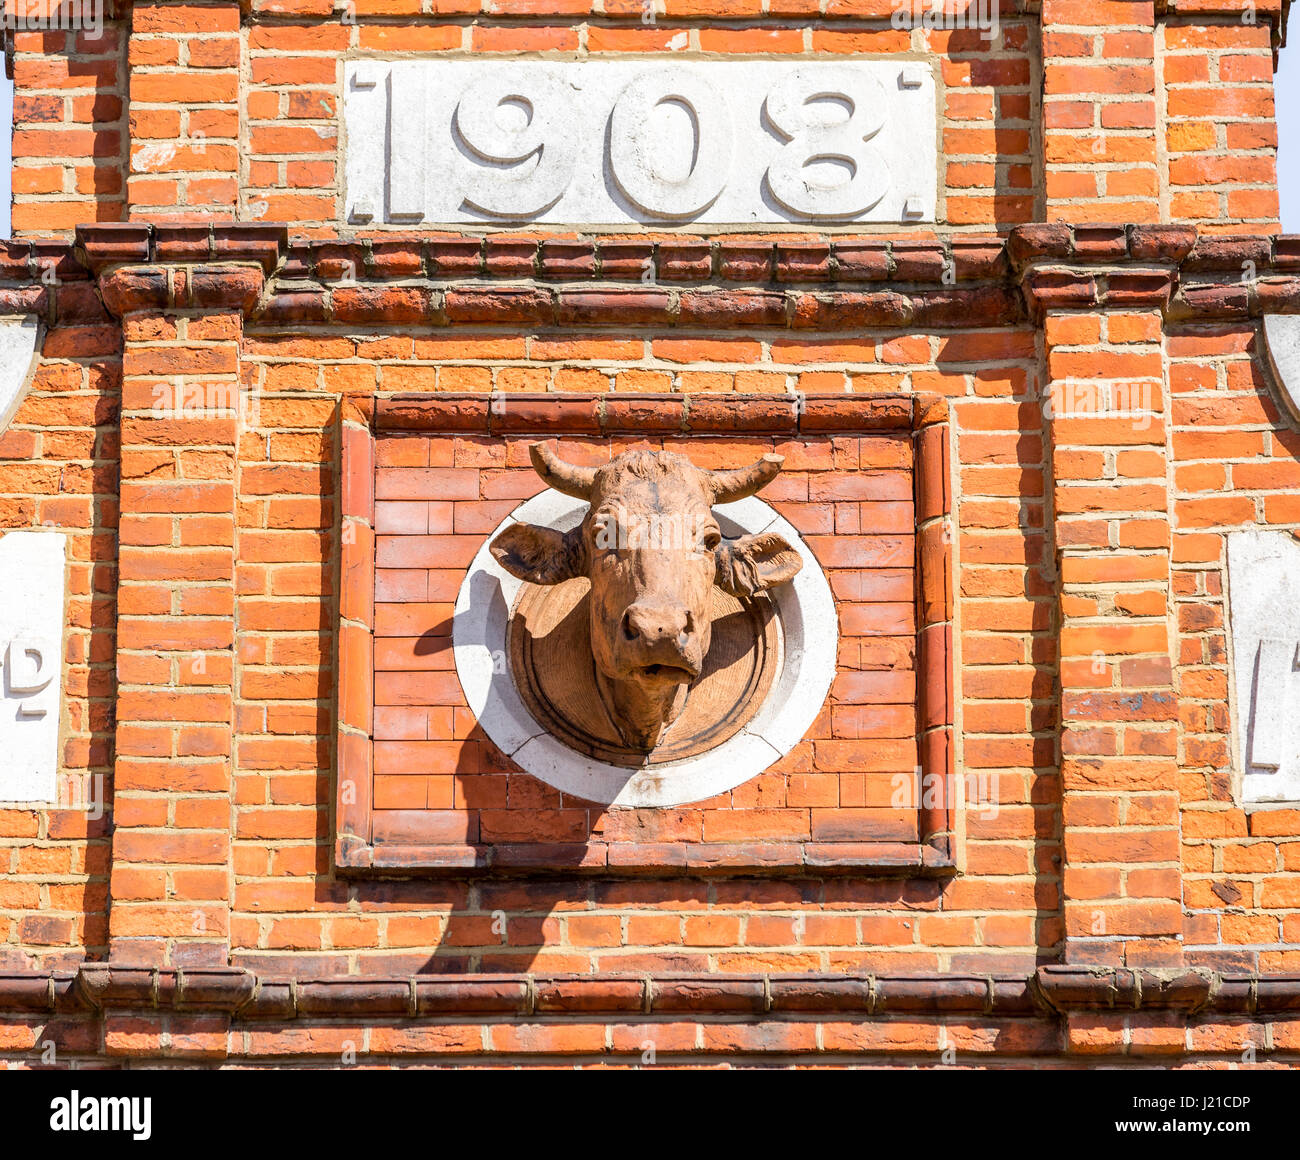 the top of an old building built in 1908 with an elaborate cow's head protruding from the facade in London England, - Stock Image